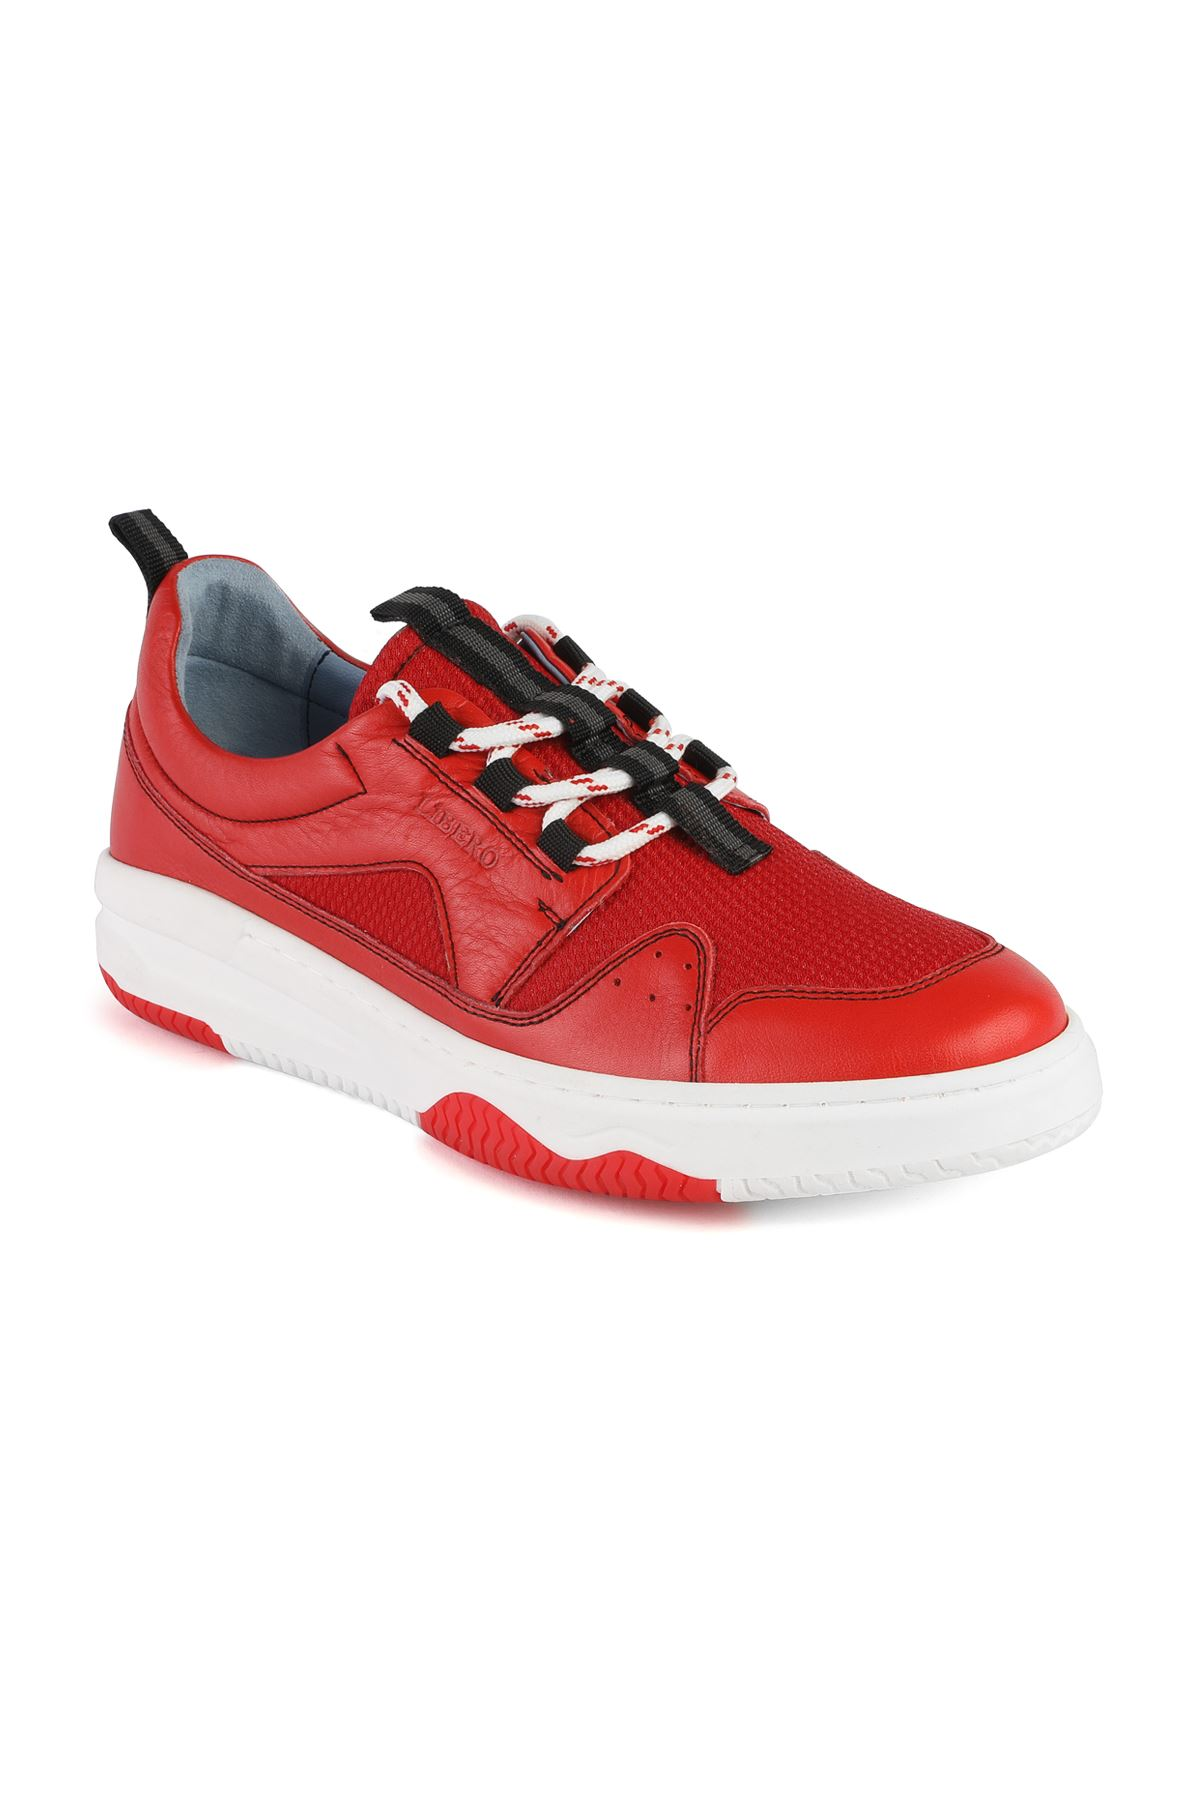 Libero 3341 Red Sports Shoes